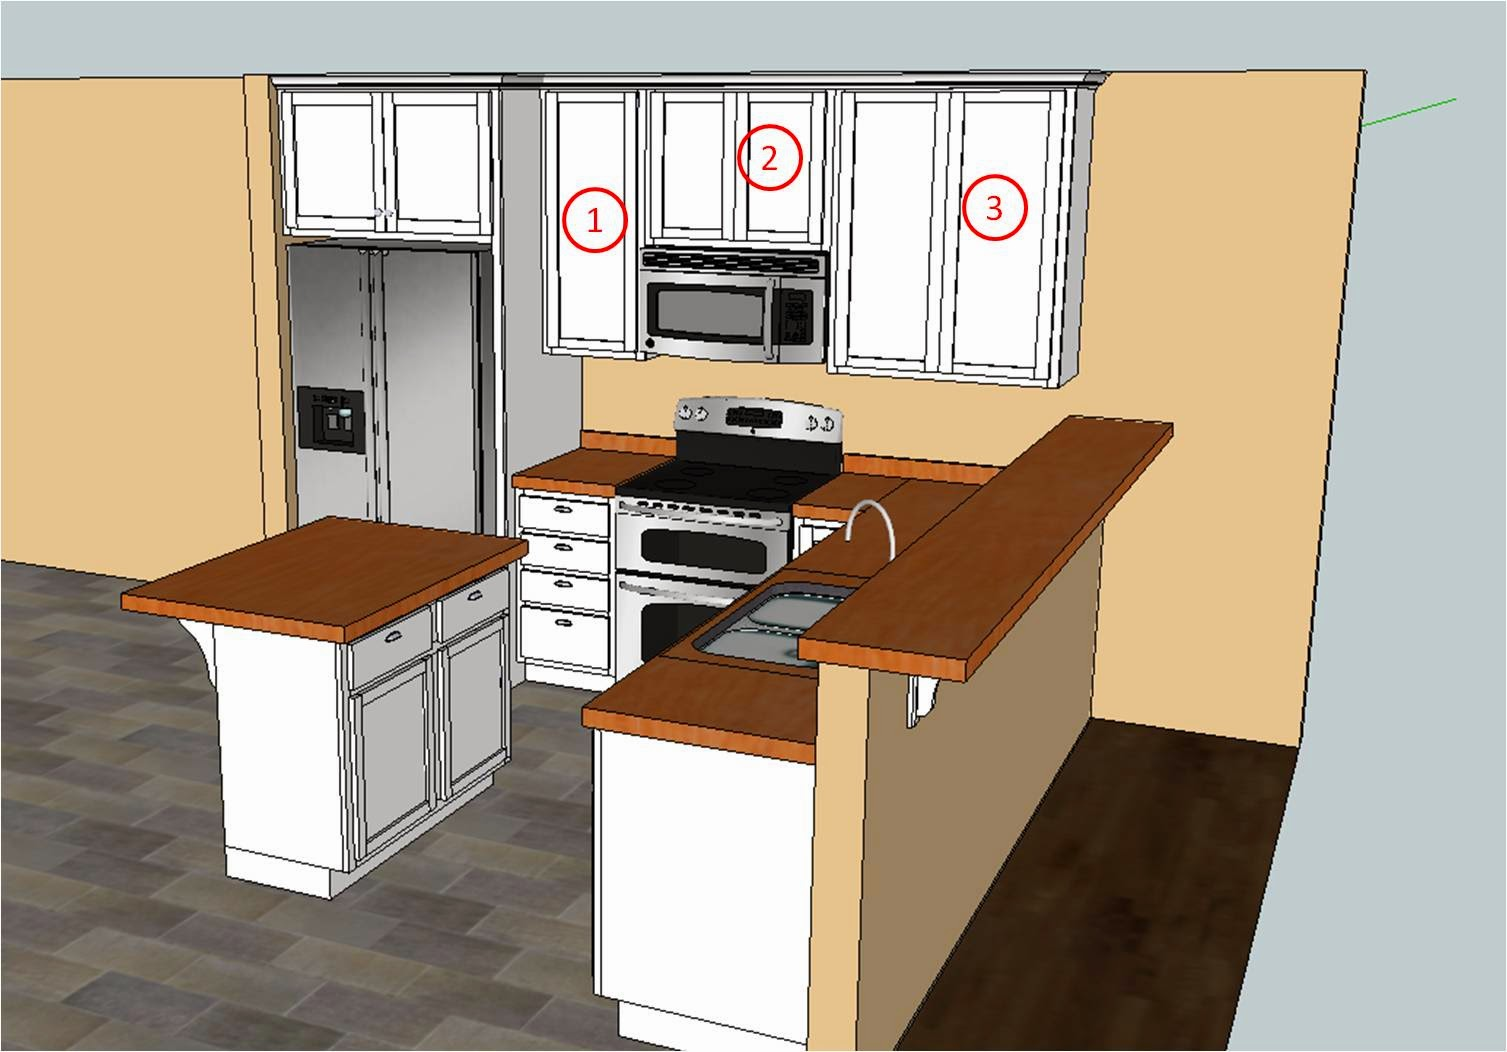 upper kitchen cabinet build upper kitchen cabinets To start off the project I drew up the three kitchen cabinets in SketchUp so I could figure out how much material I was going to need and to get a good